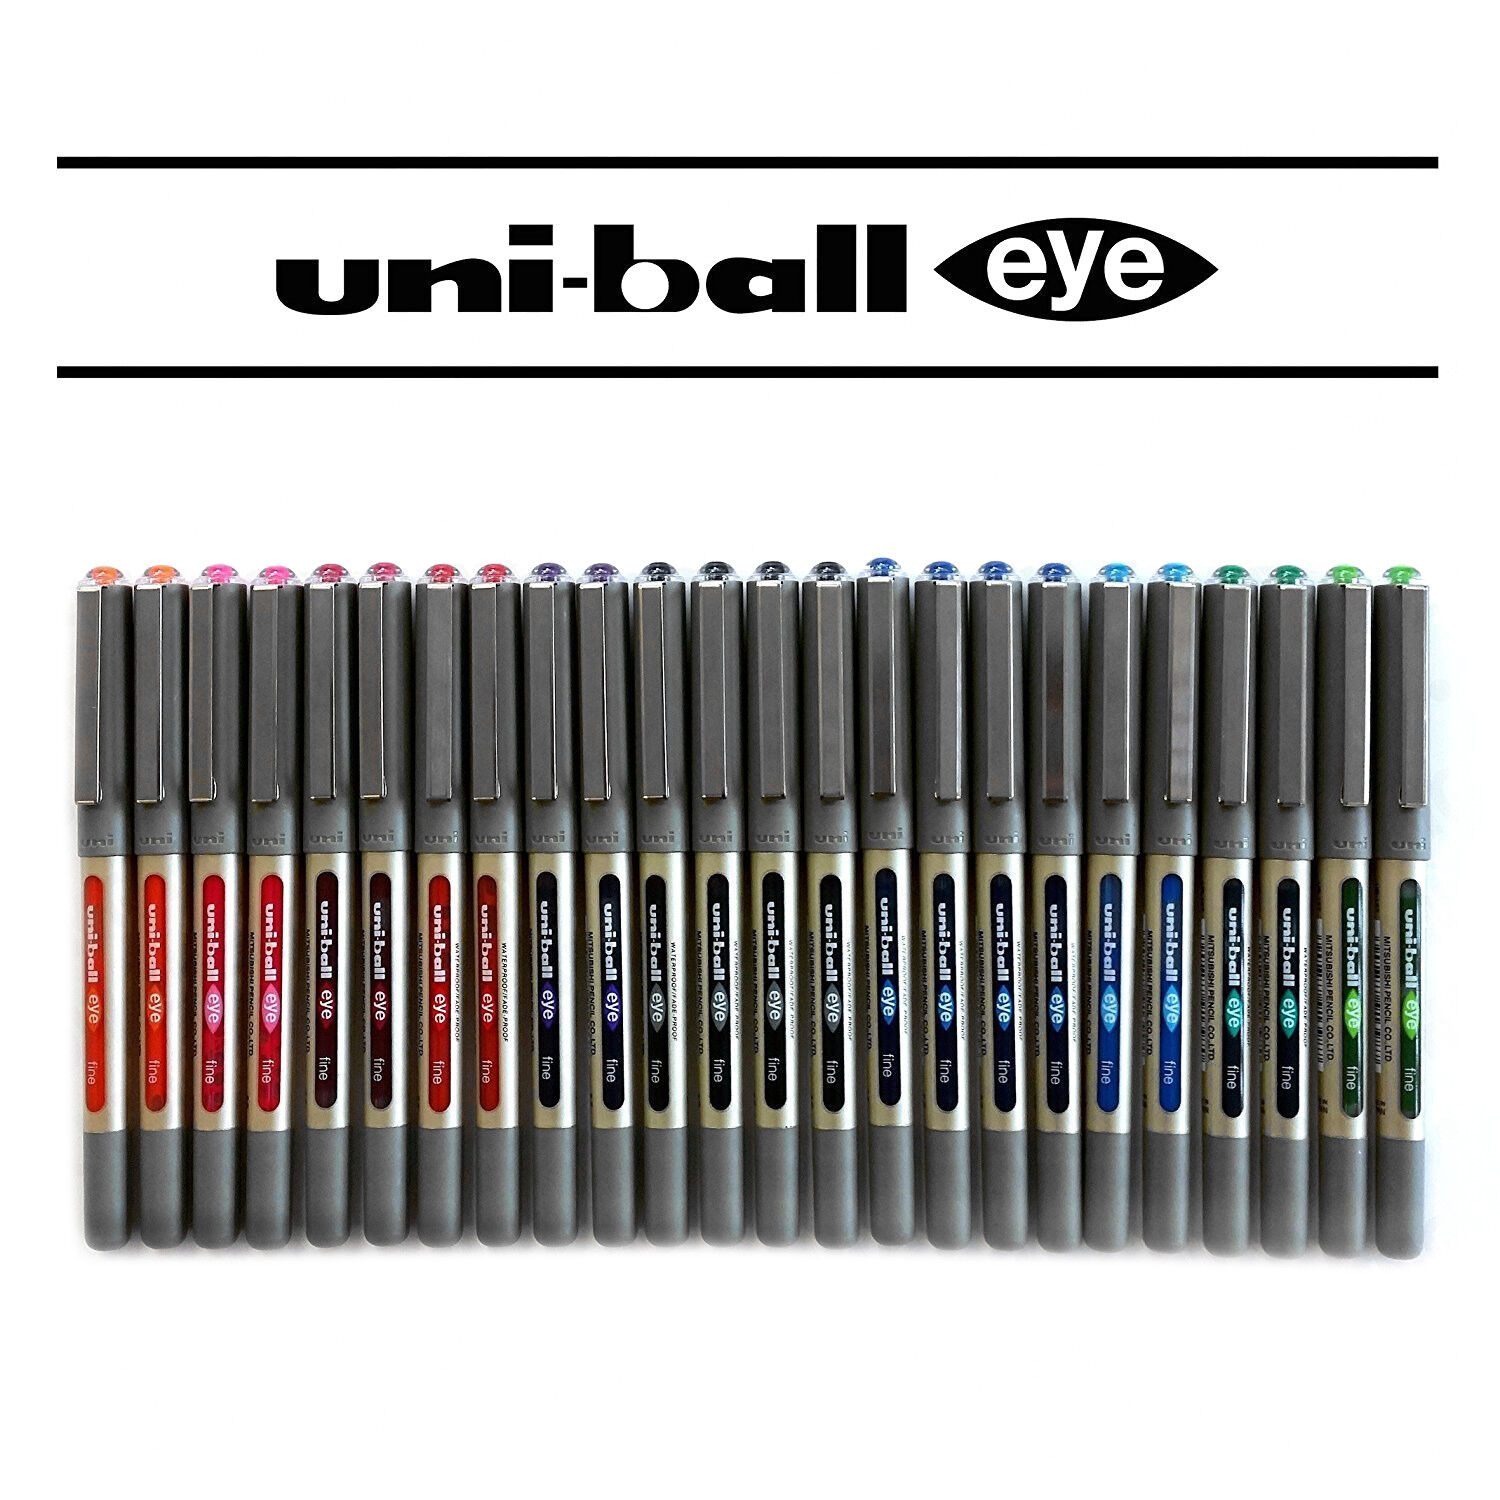 Uniball UB-157 Rollerball Pen Set - 24 Assorted Pen Set - Limited Edition Set